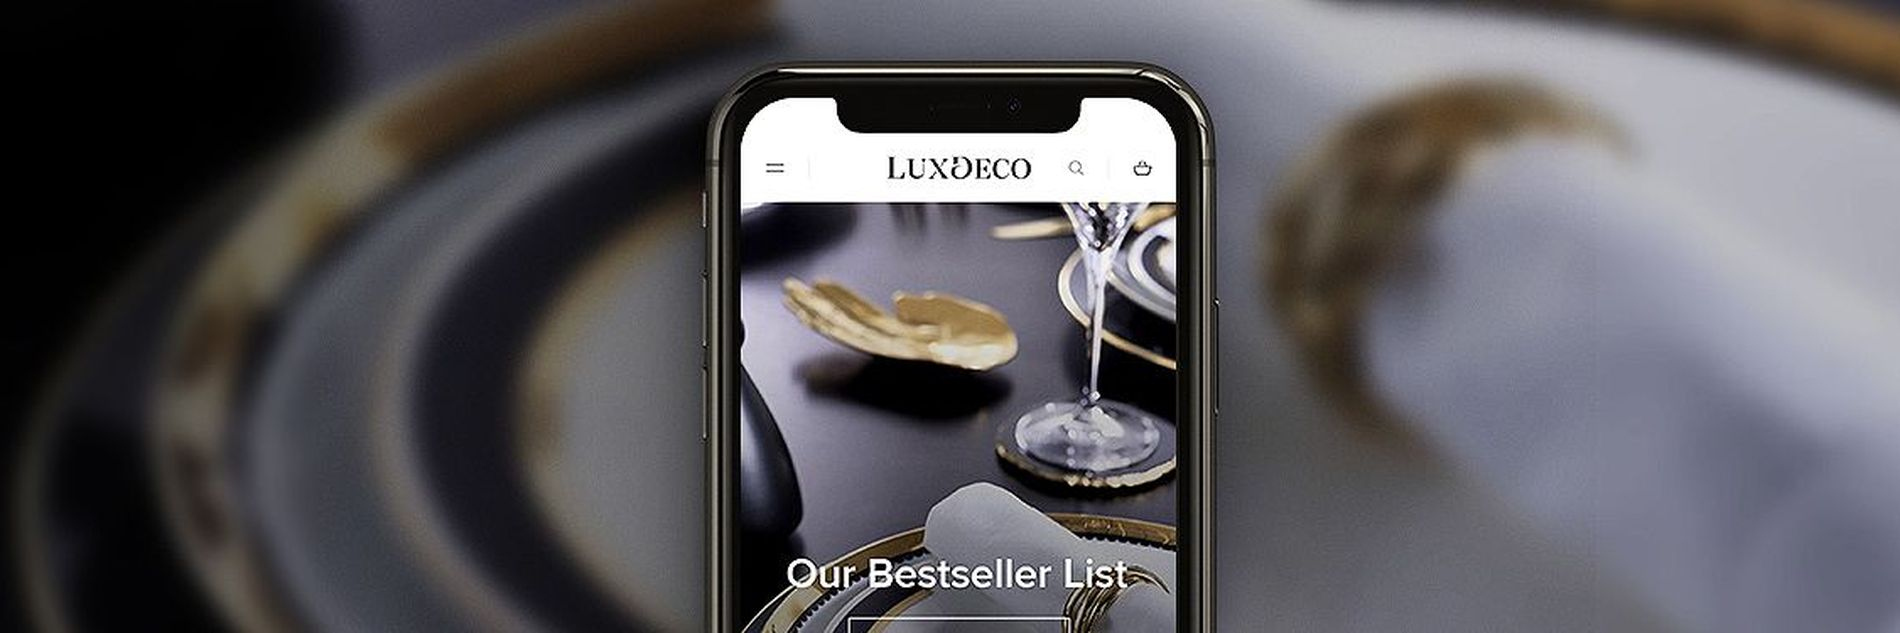 LuxDeco Ltd